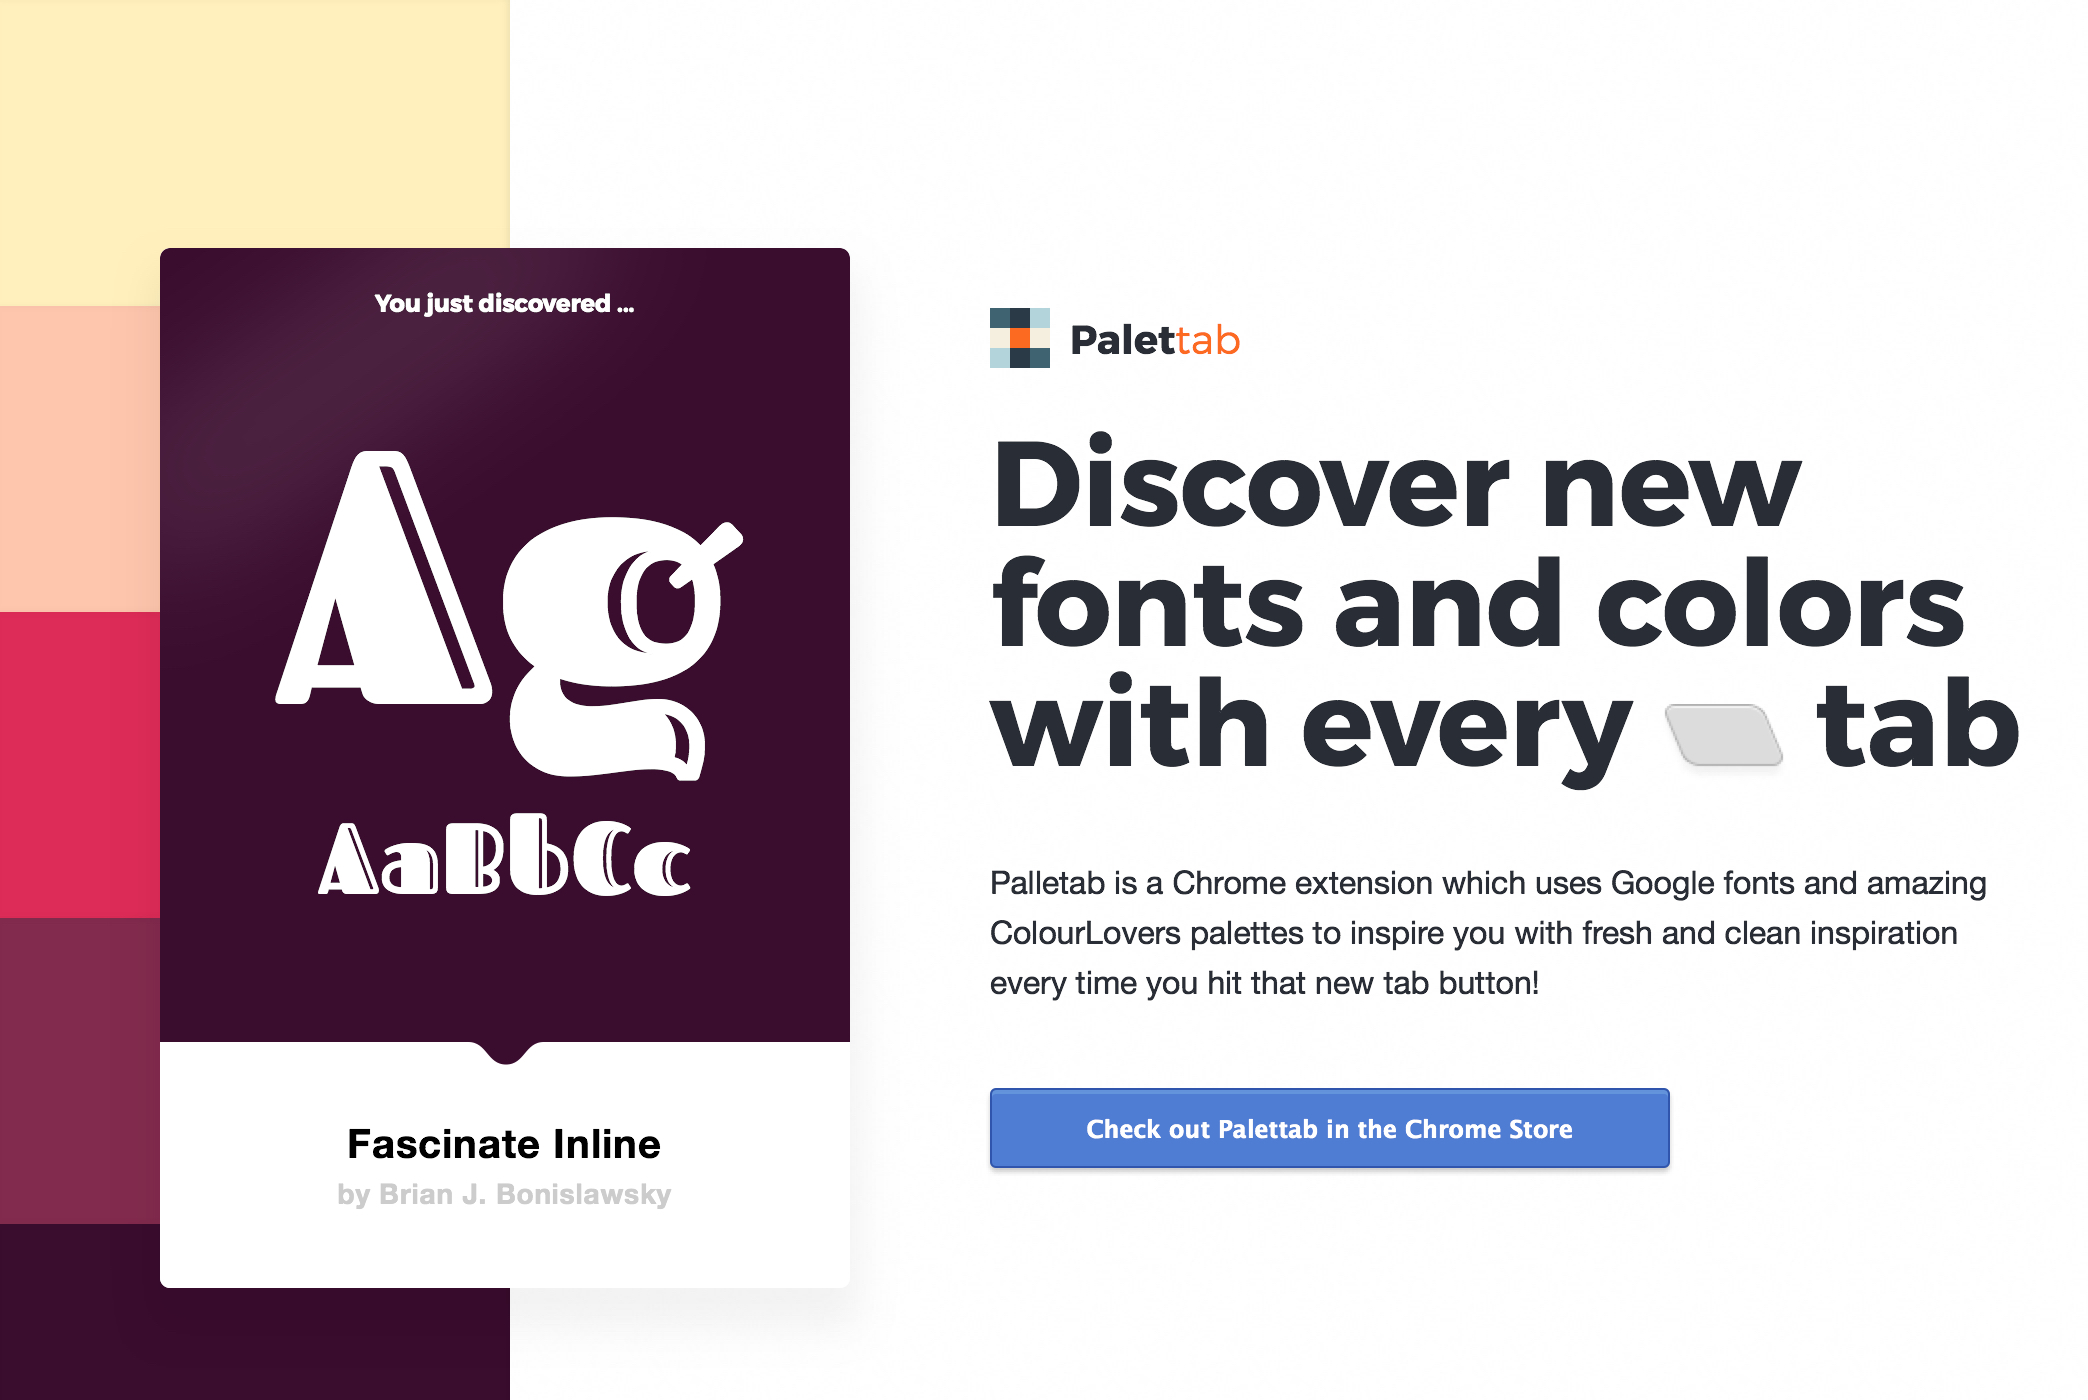 Palettab, a chrome extension to bring something new, to the new tab button.